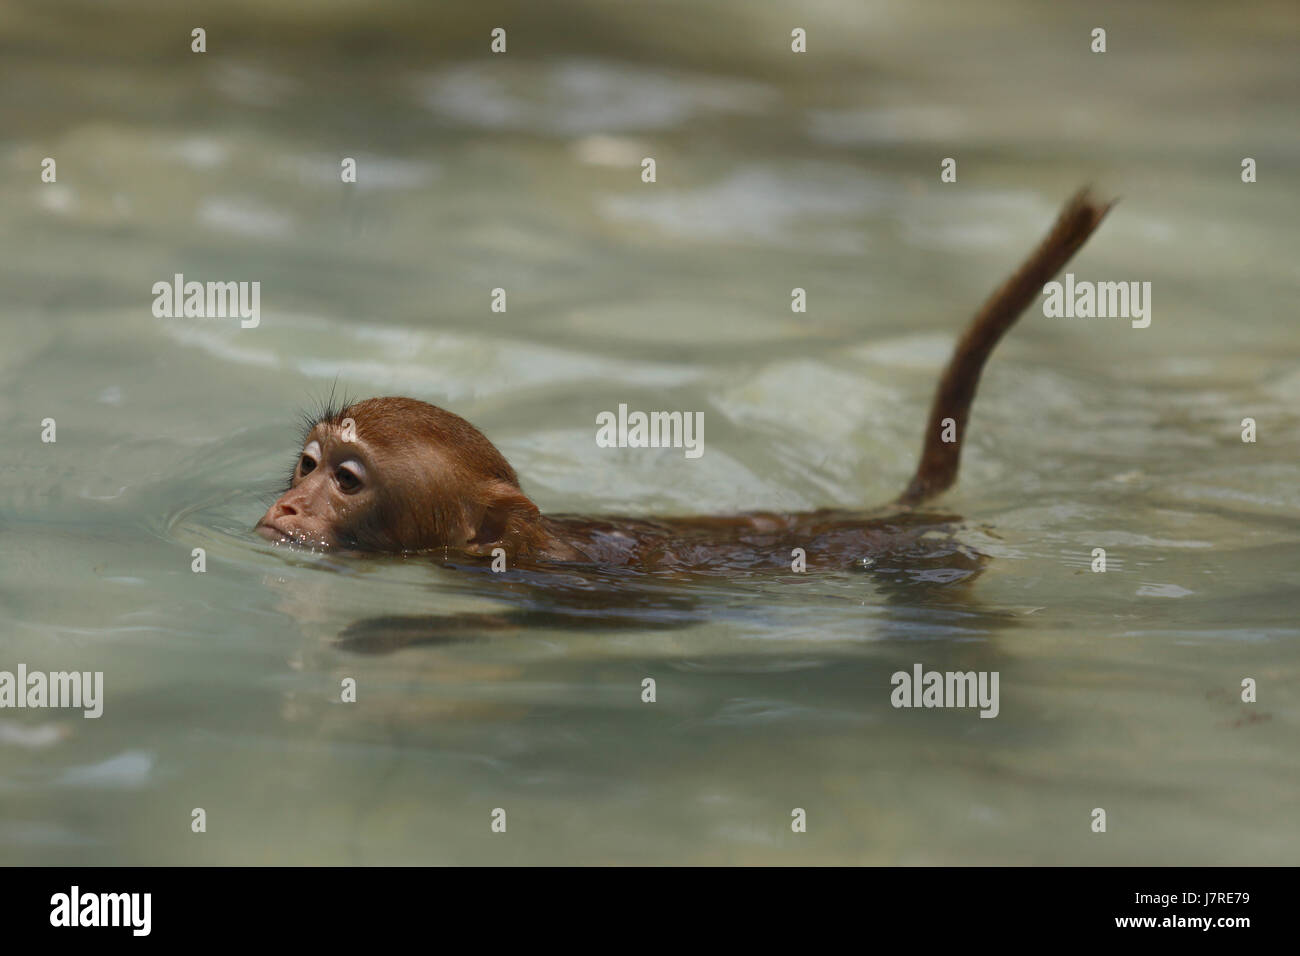 A Rhesus Macaque rests on the edge of a water tank at Dhaka Zoo during a swim to escape the summer heat. Dhaka, - Stock Image